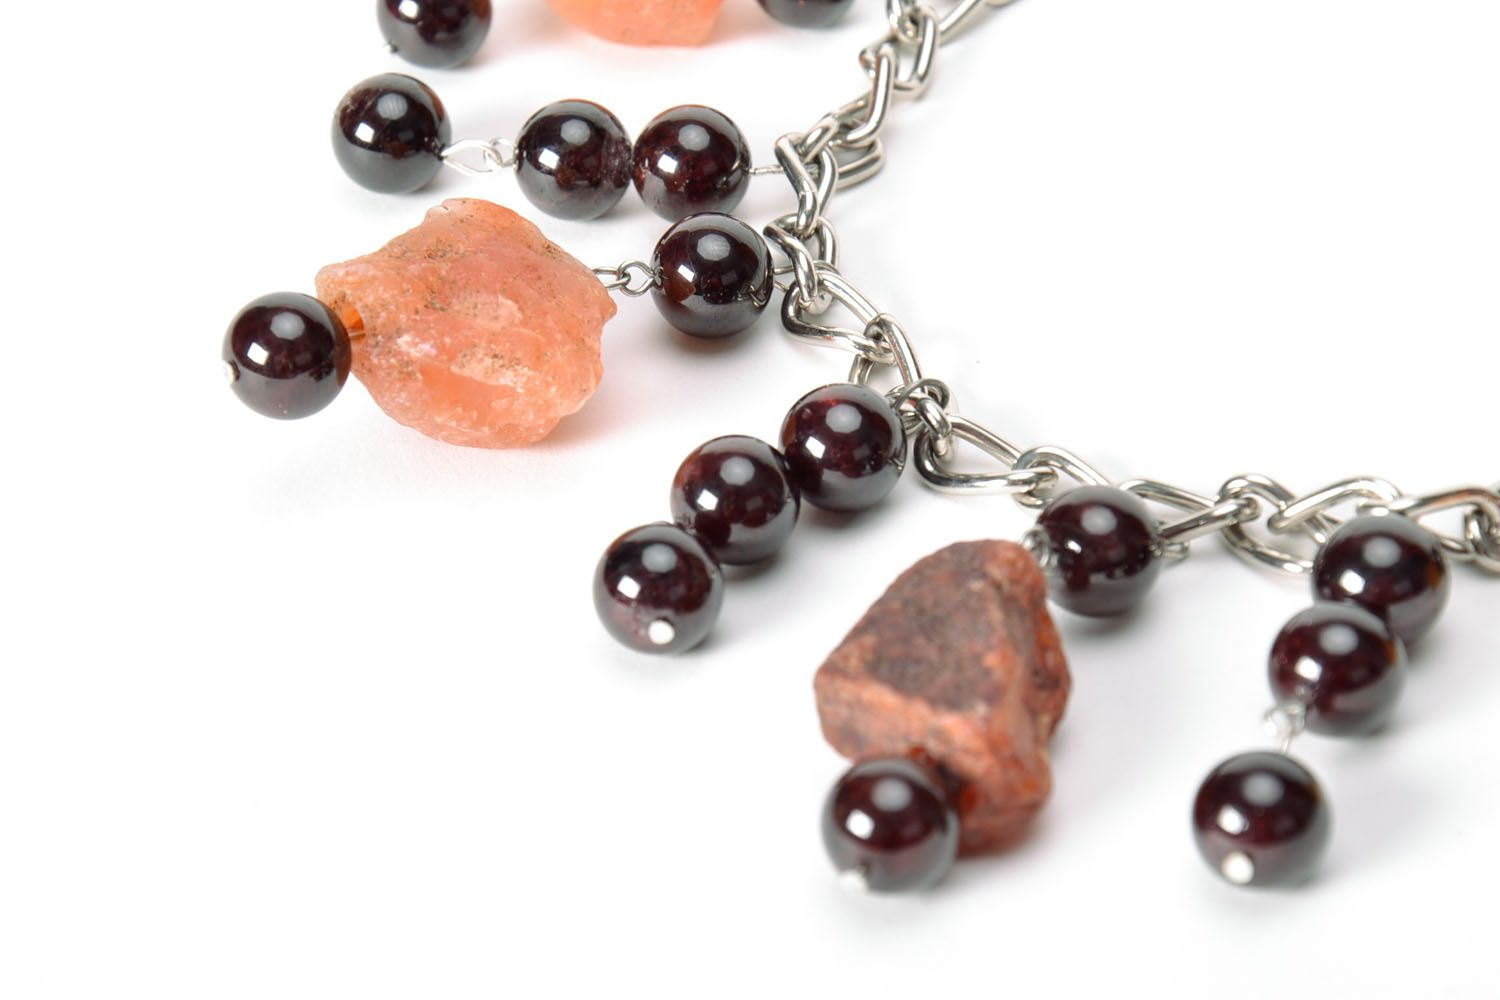 Fashionable necklace with natural stones photo 4